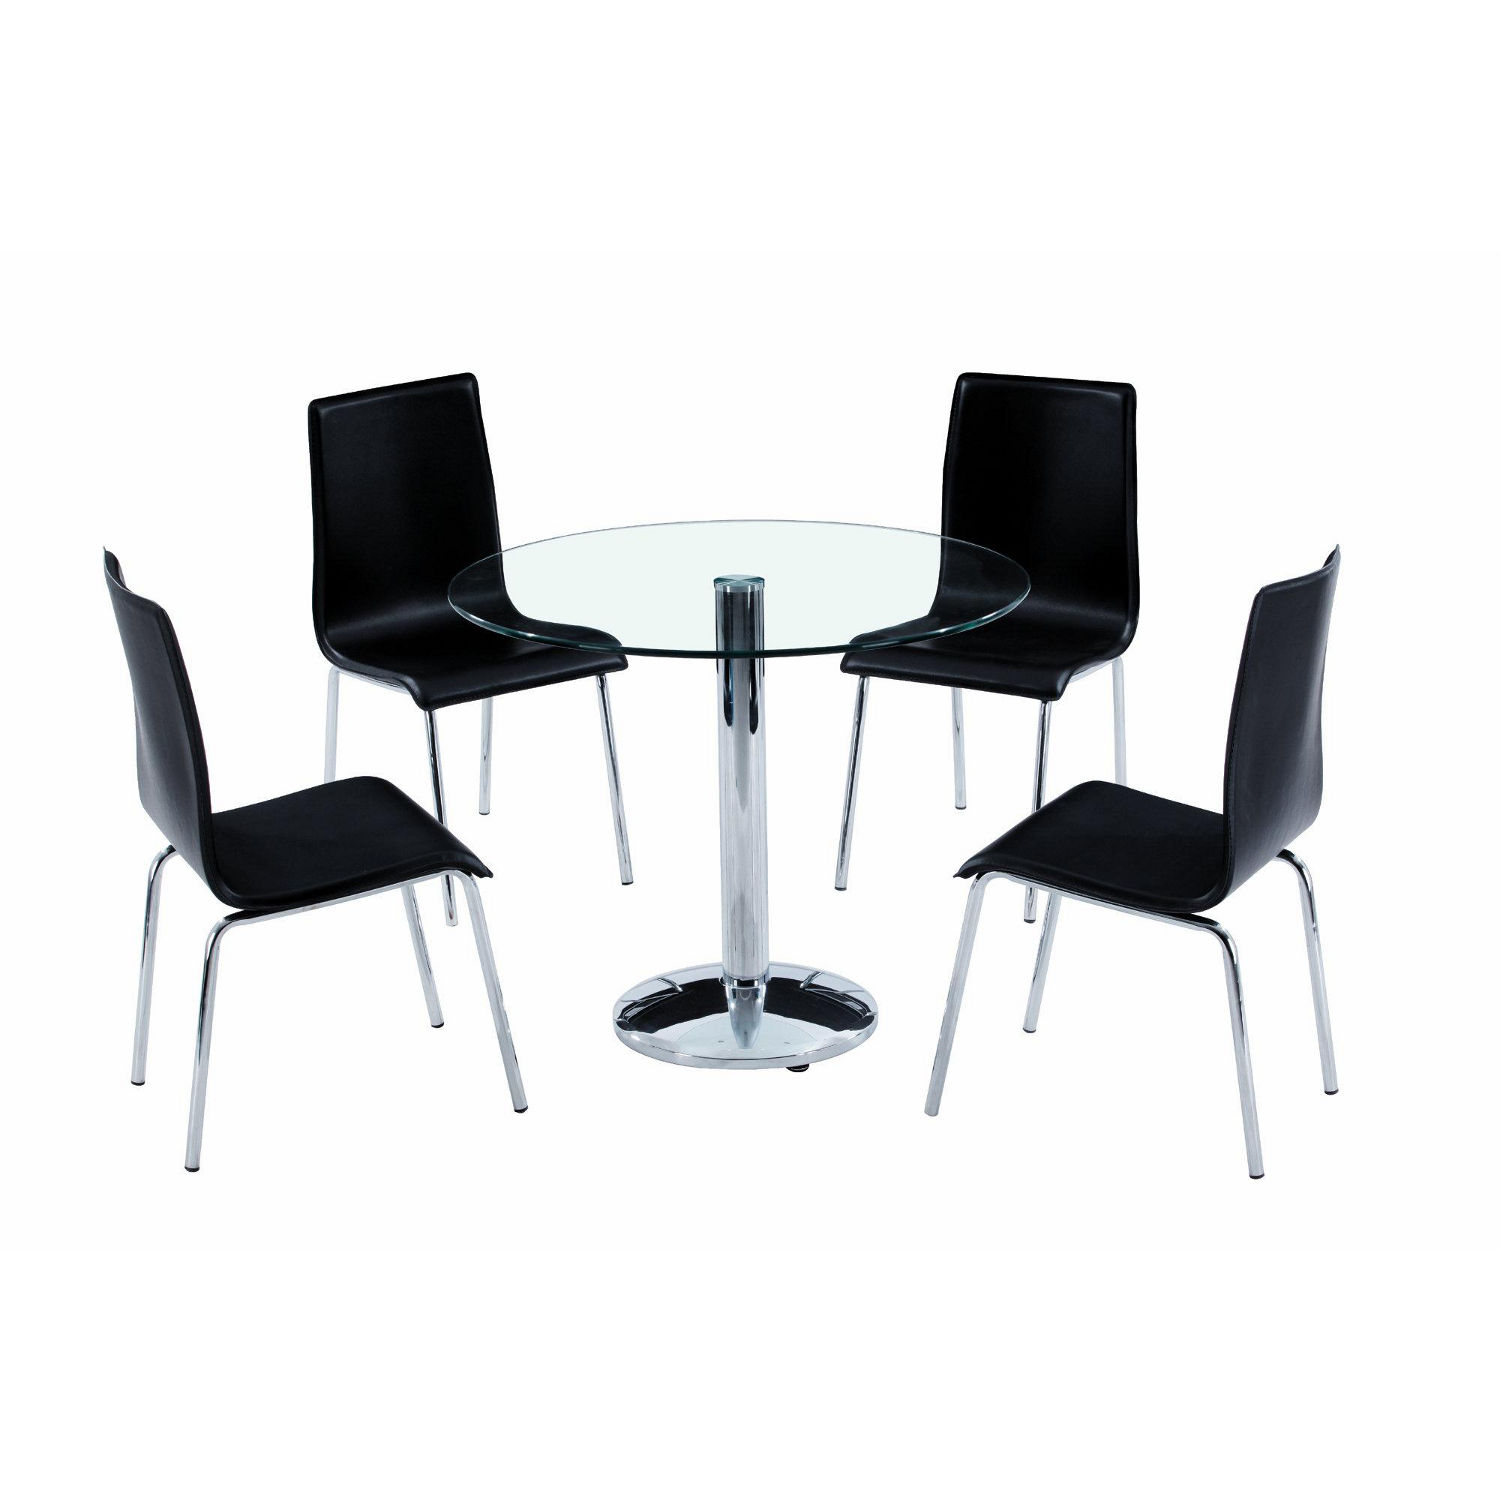 Image of: Black glass table and chairs